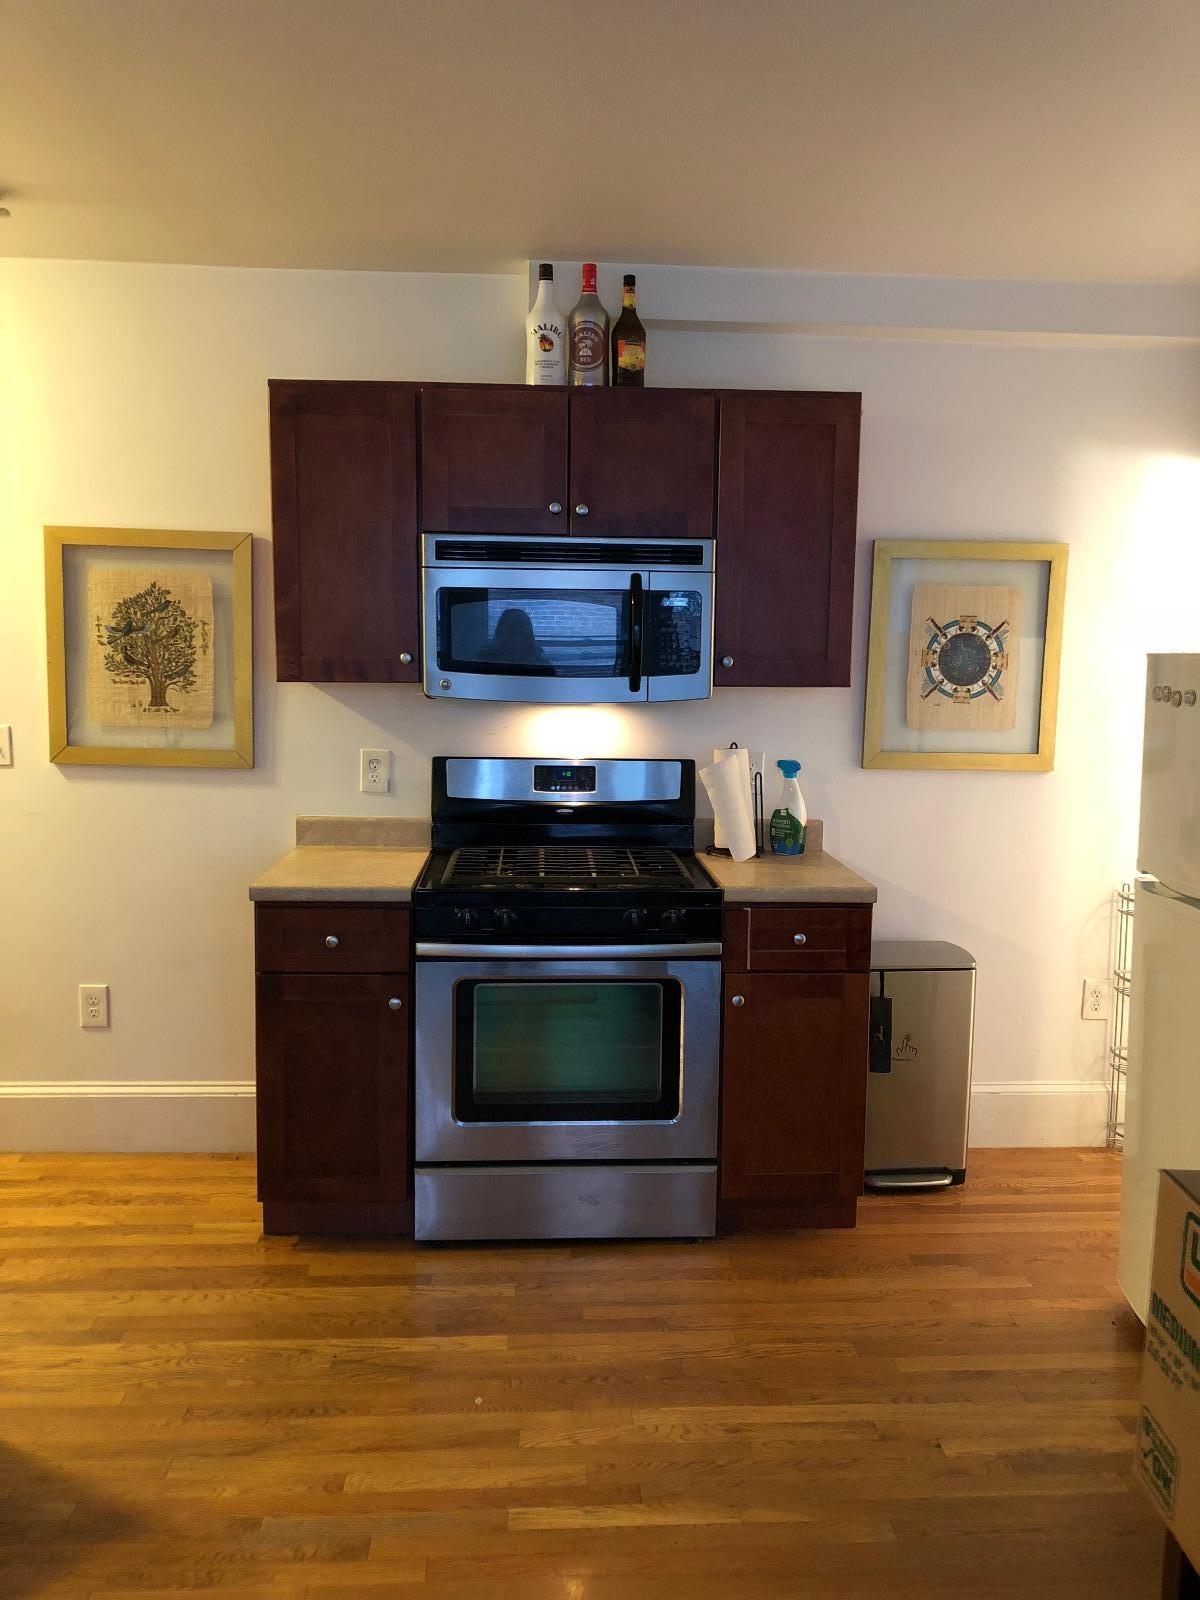 1.5 Bd on Commonwealth Ave., Pet Ok, NO FEE, New/Renovated Kitchen